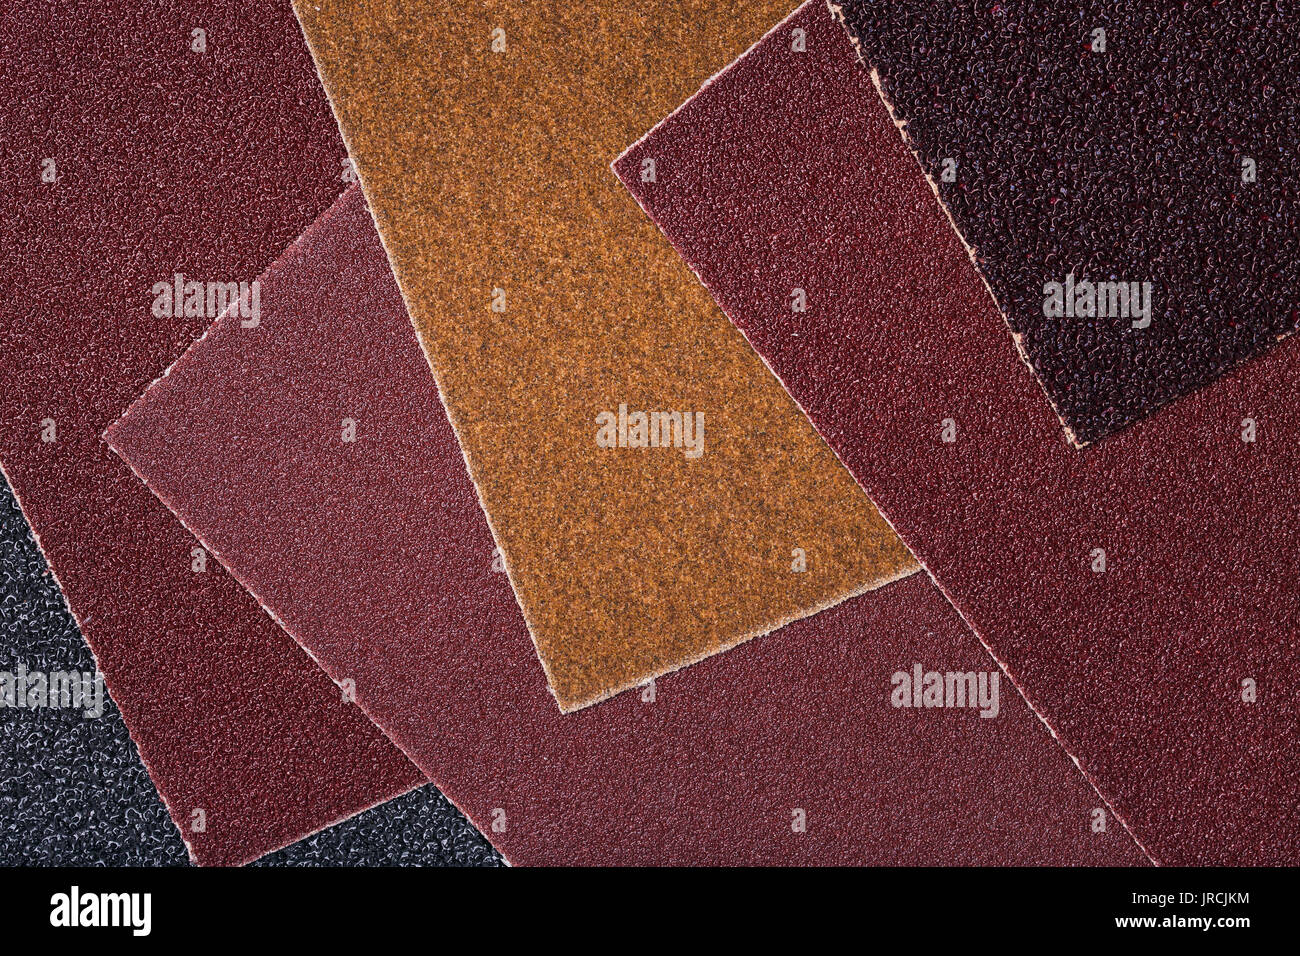 The texture of sandpaper with different grits - Stock Image